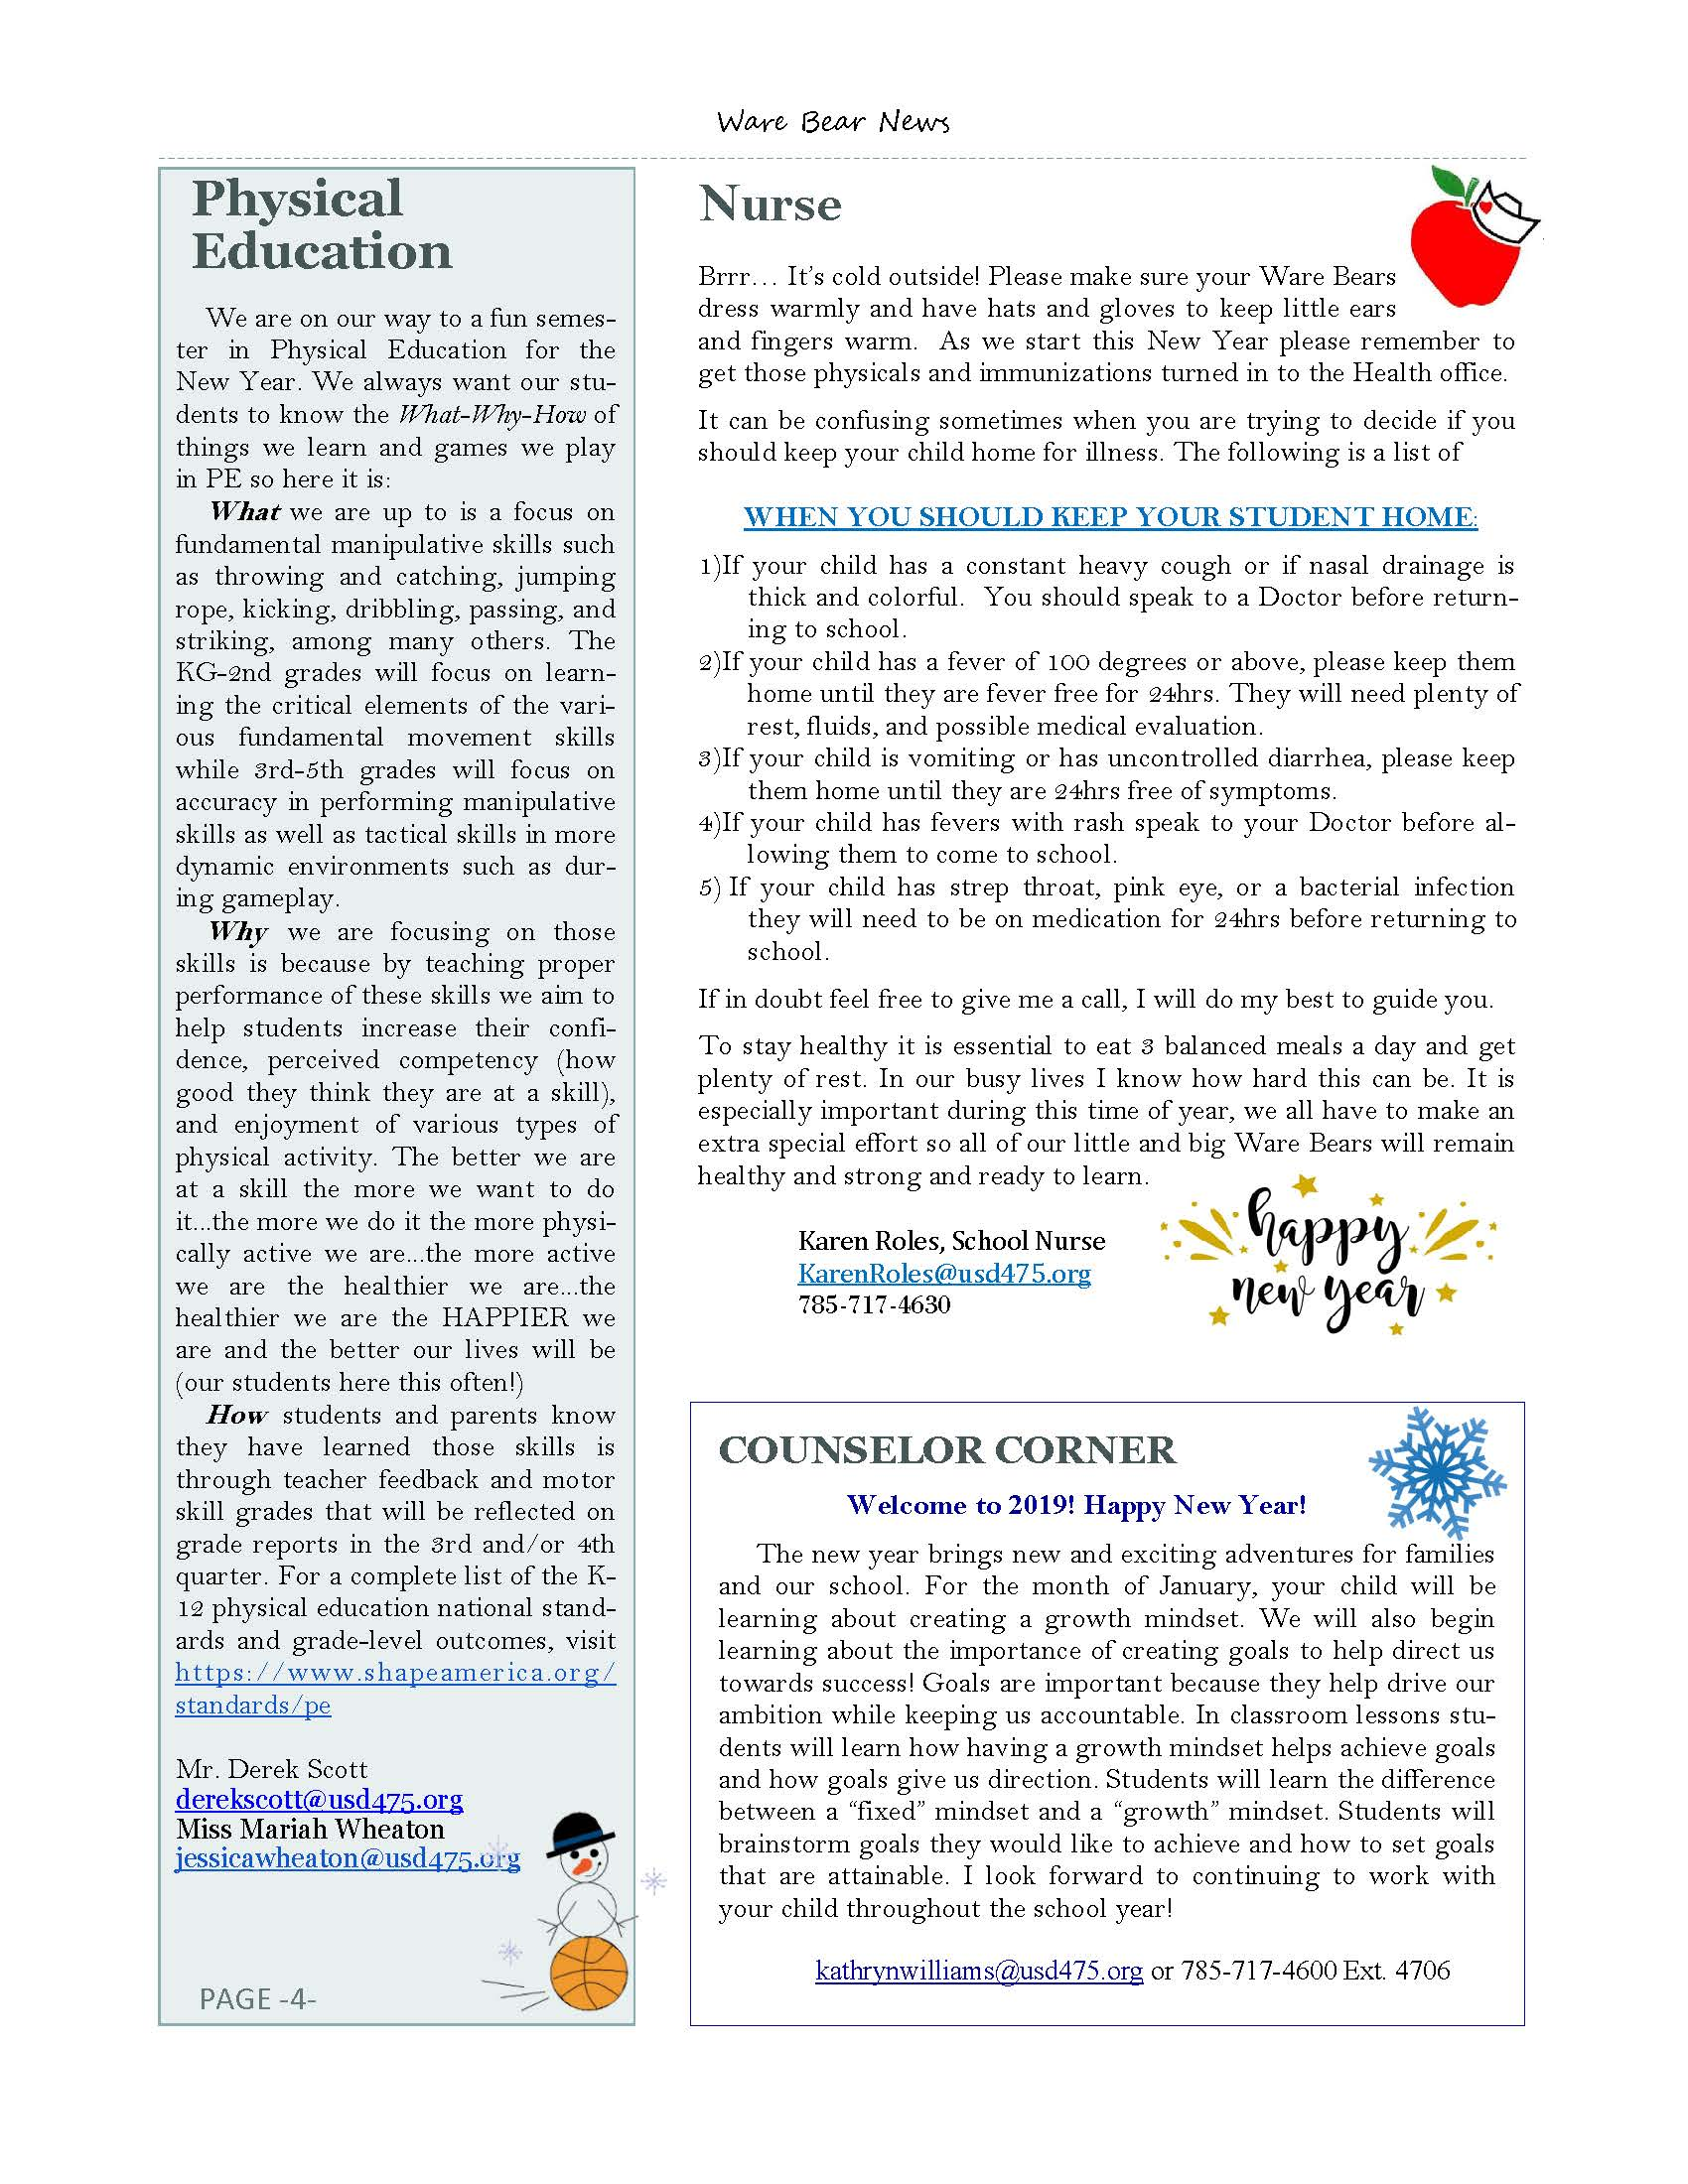 January eNewsletter Page 4